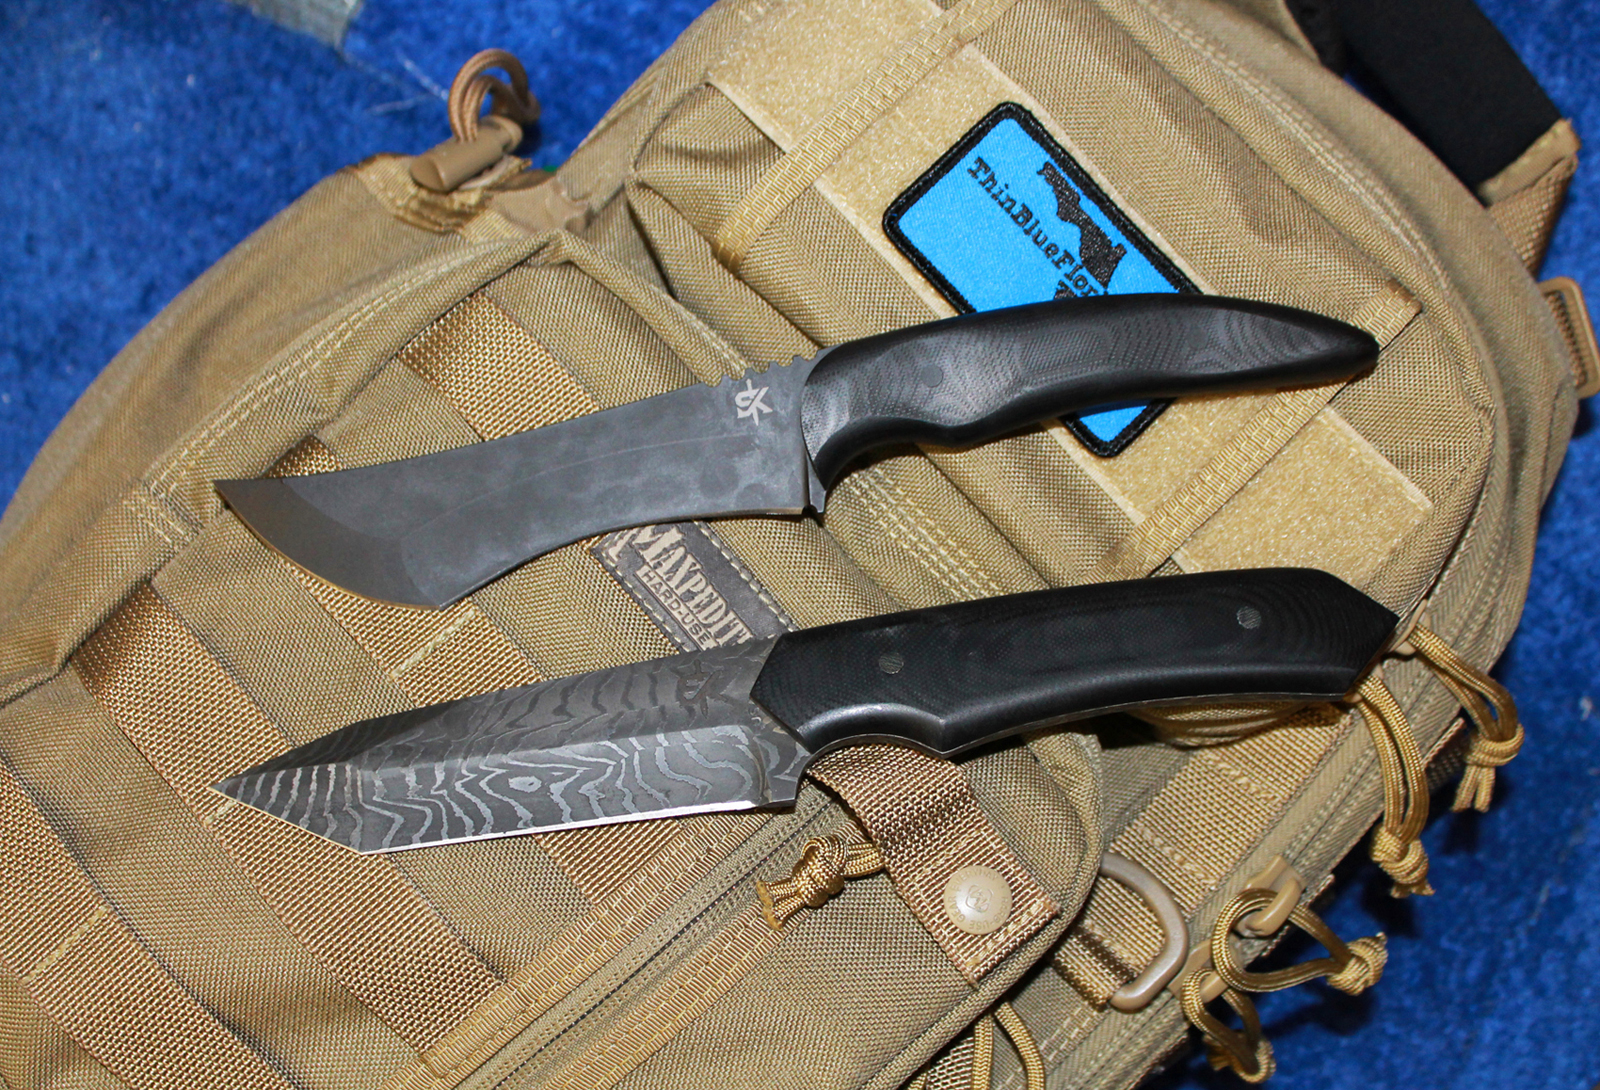 Schenk Knives duo